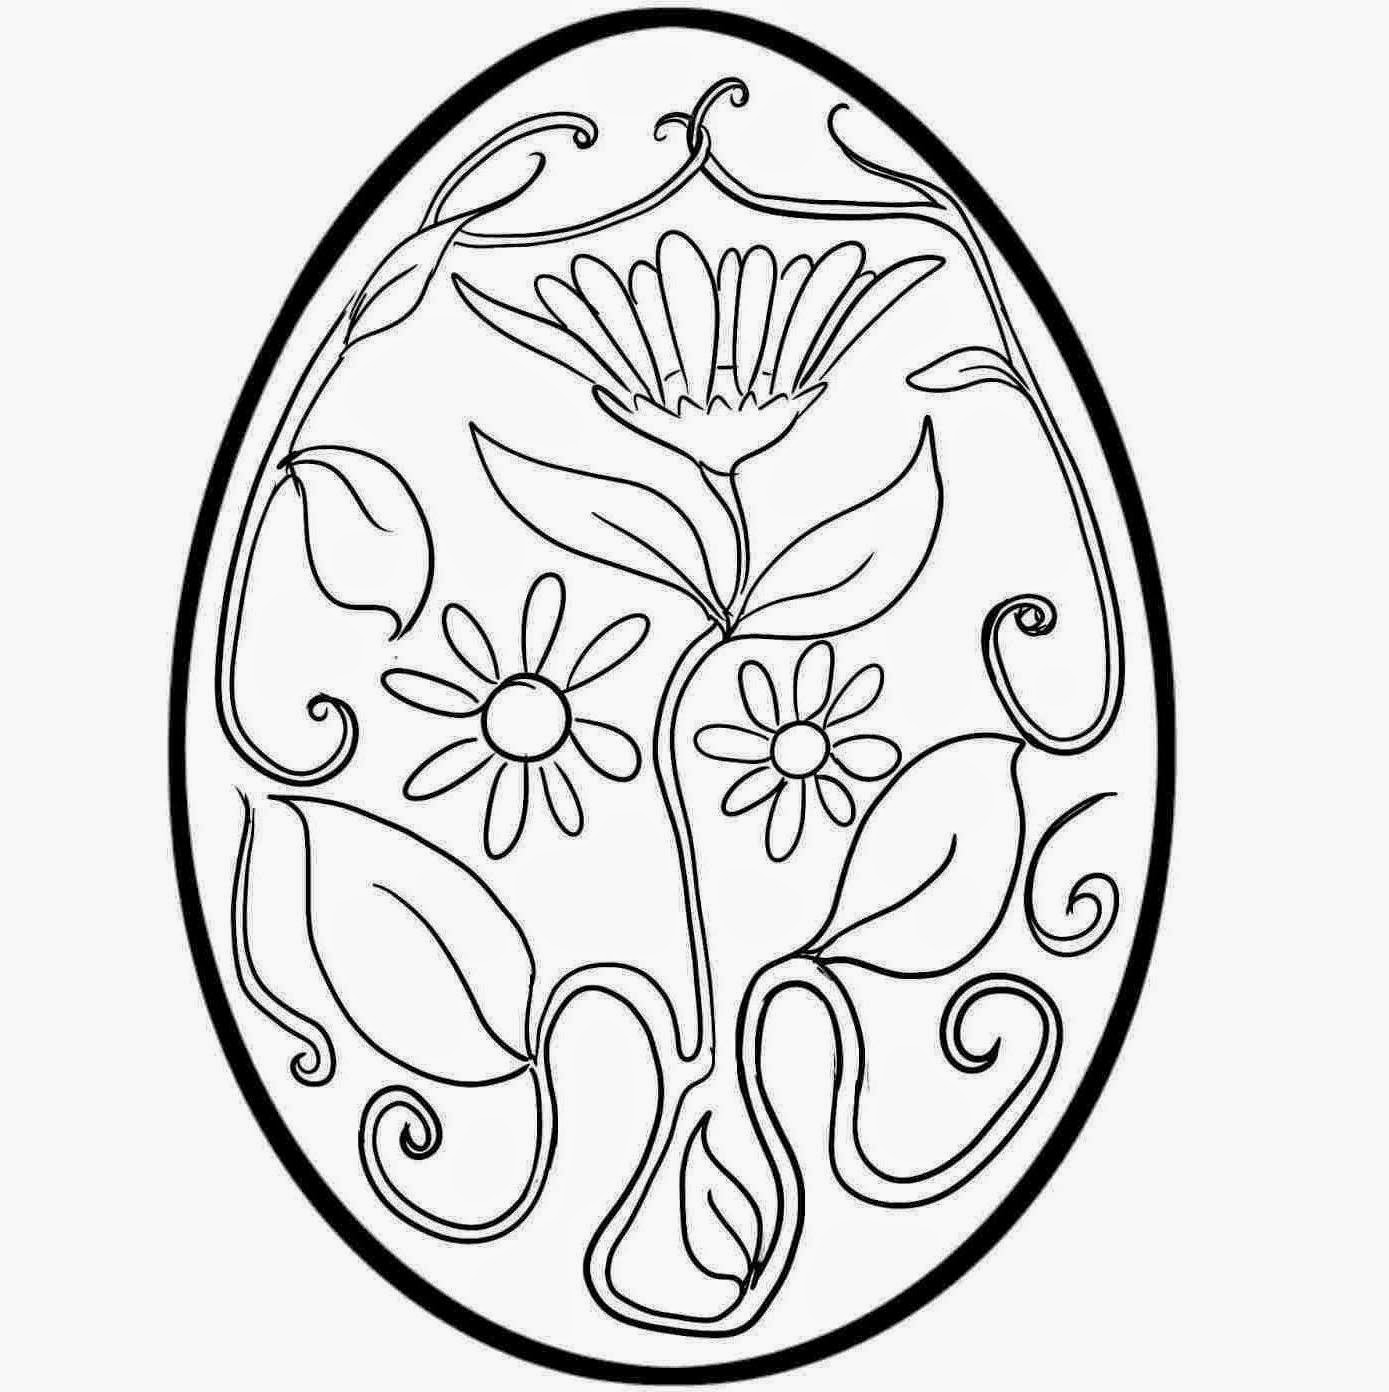 Easter Drawing at GetDrawings.com | Free for personal use Easter ...